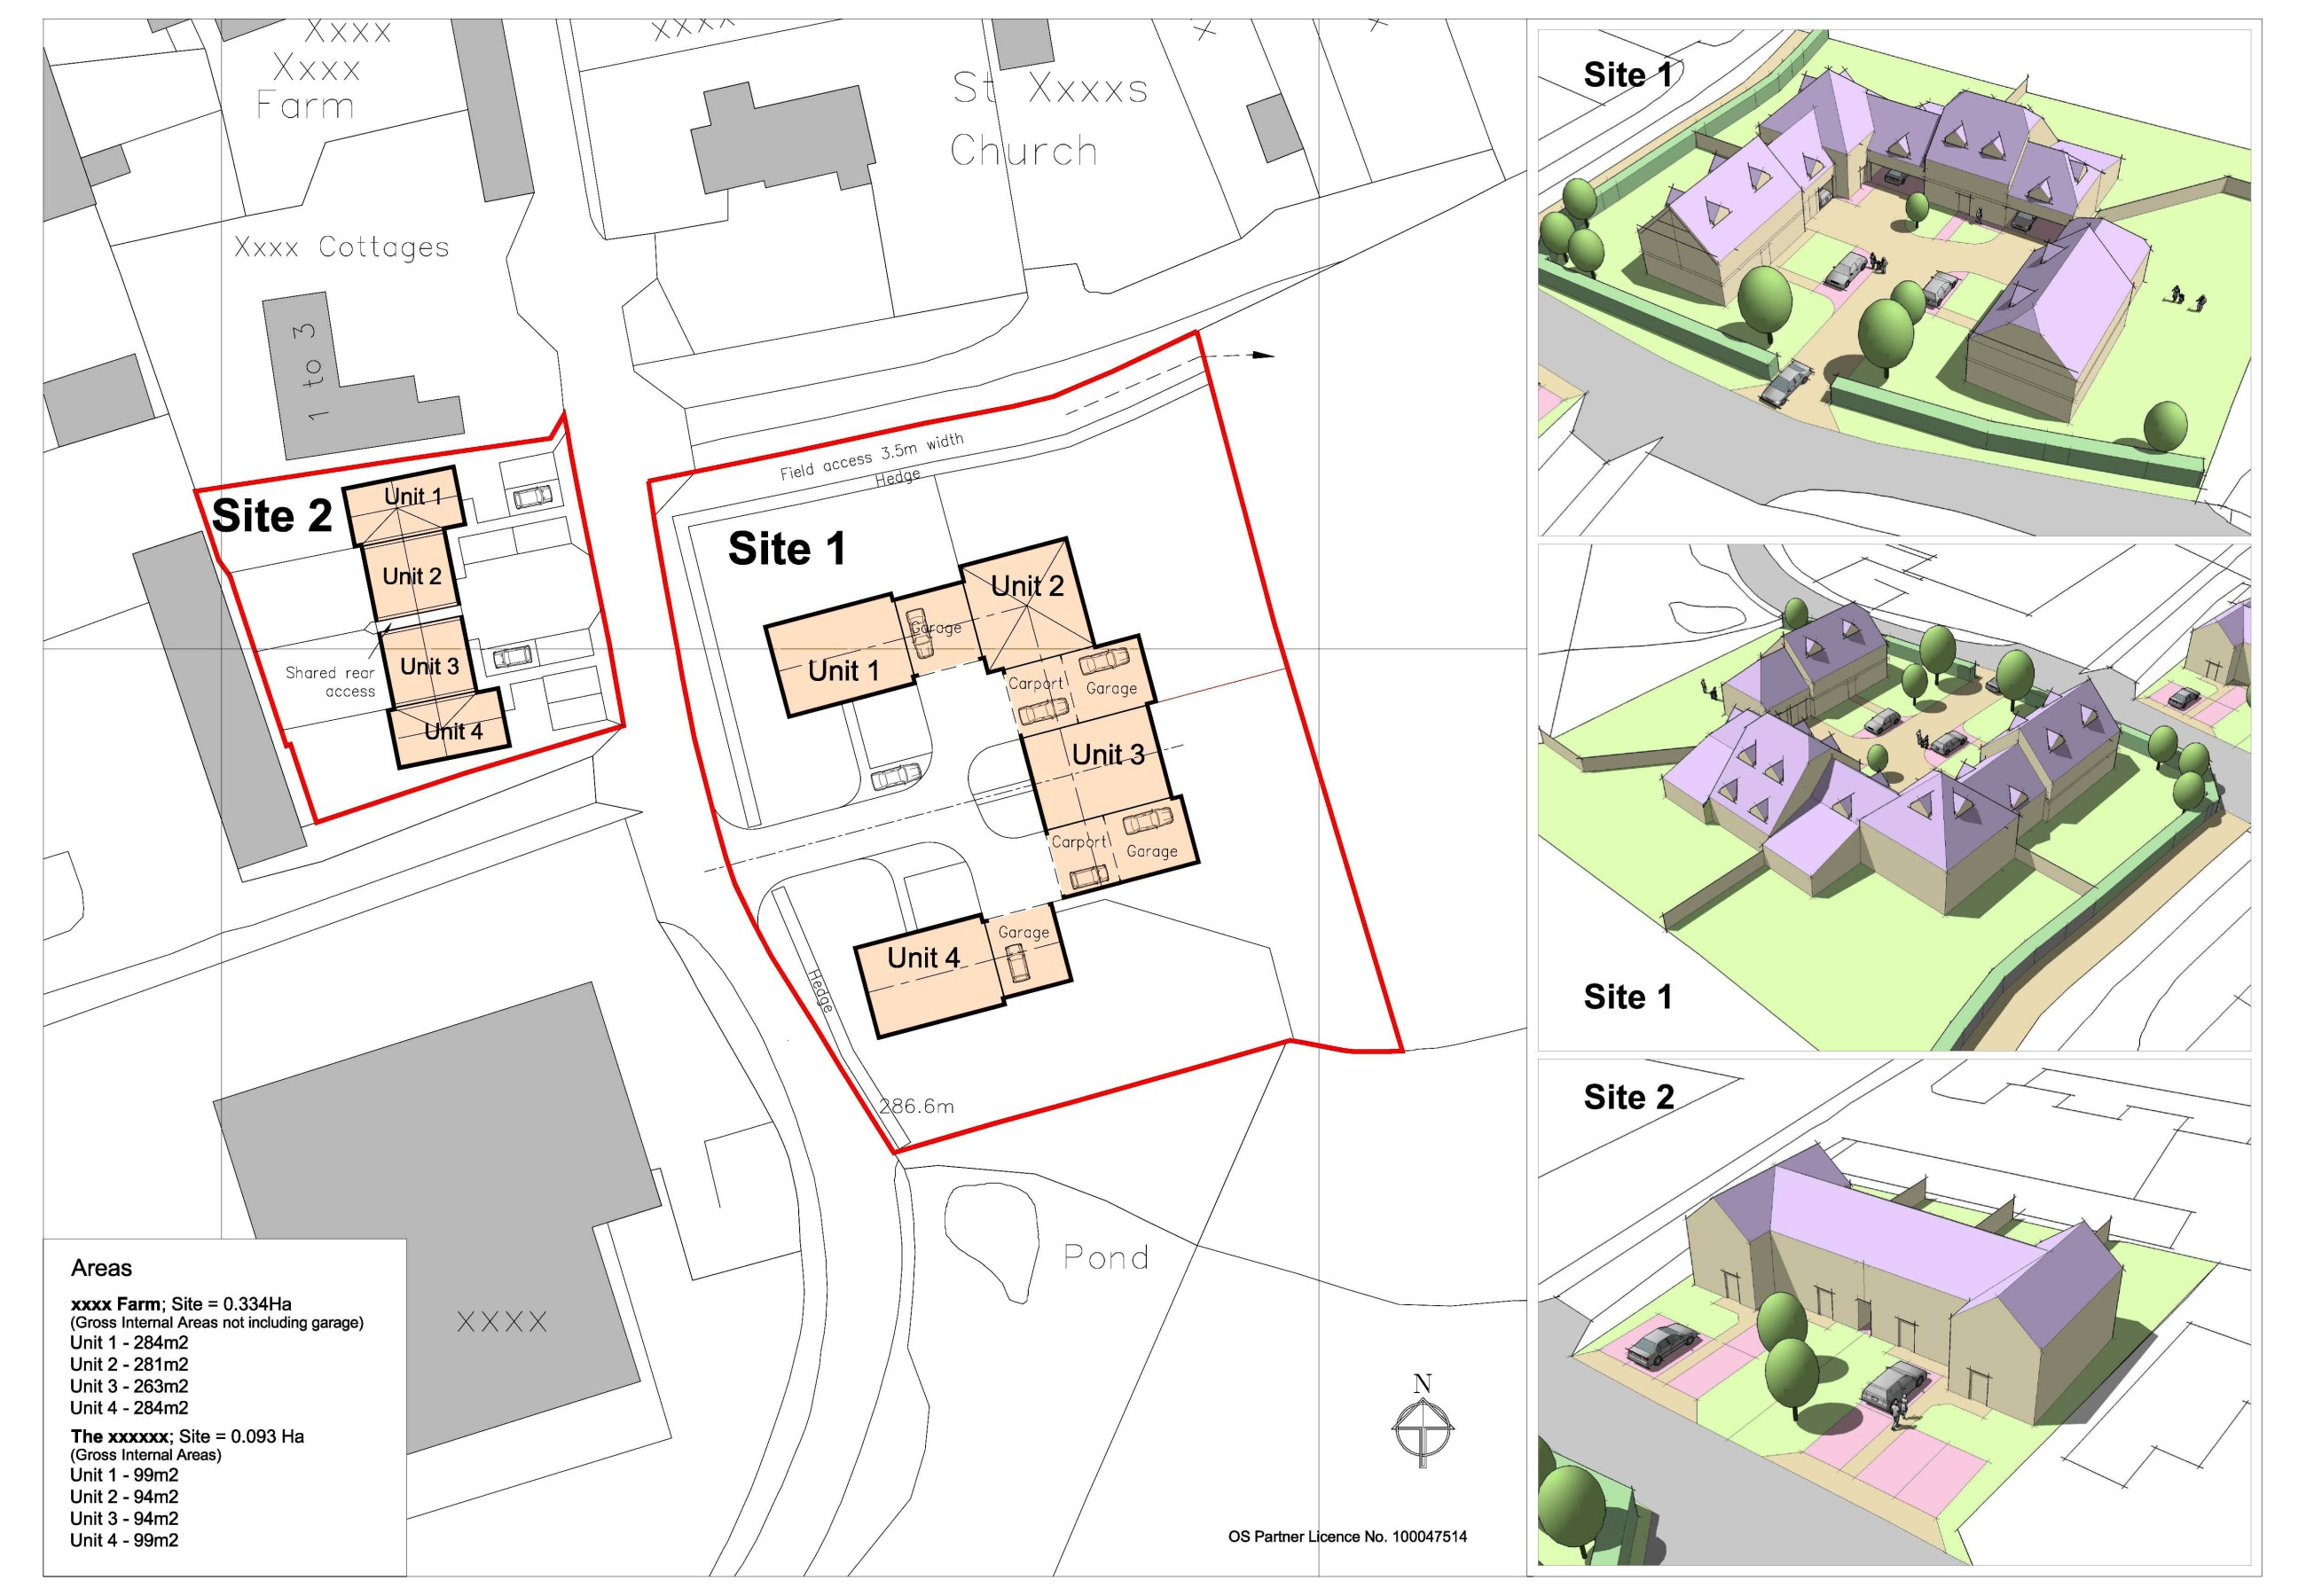 CAD drawing, extensions, planning permission, architectural designer